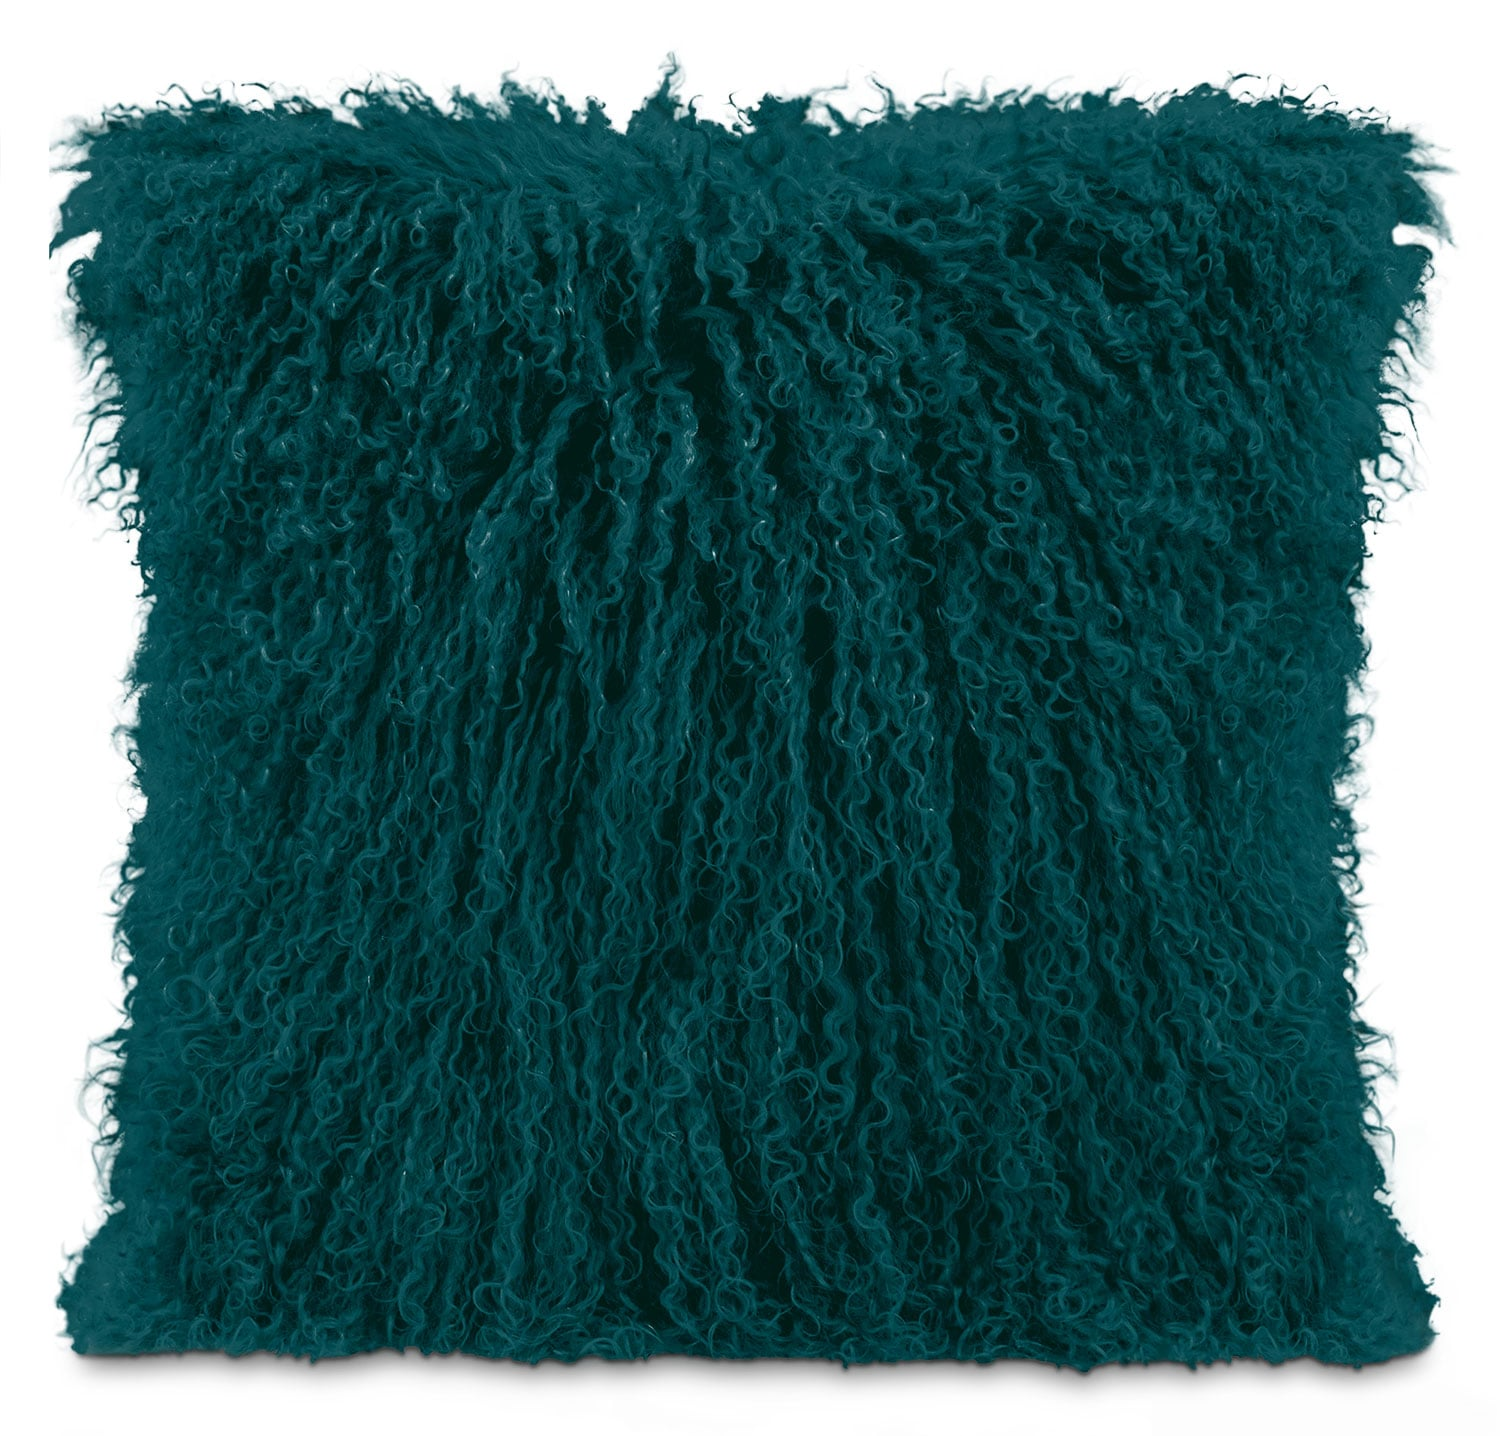 Mongolian Sheepskin Accent Pillow – Teal